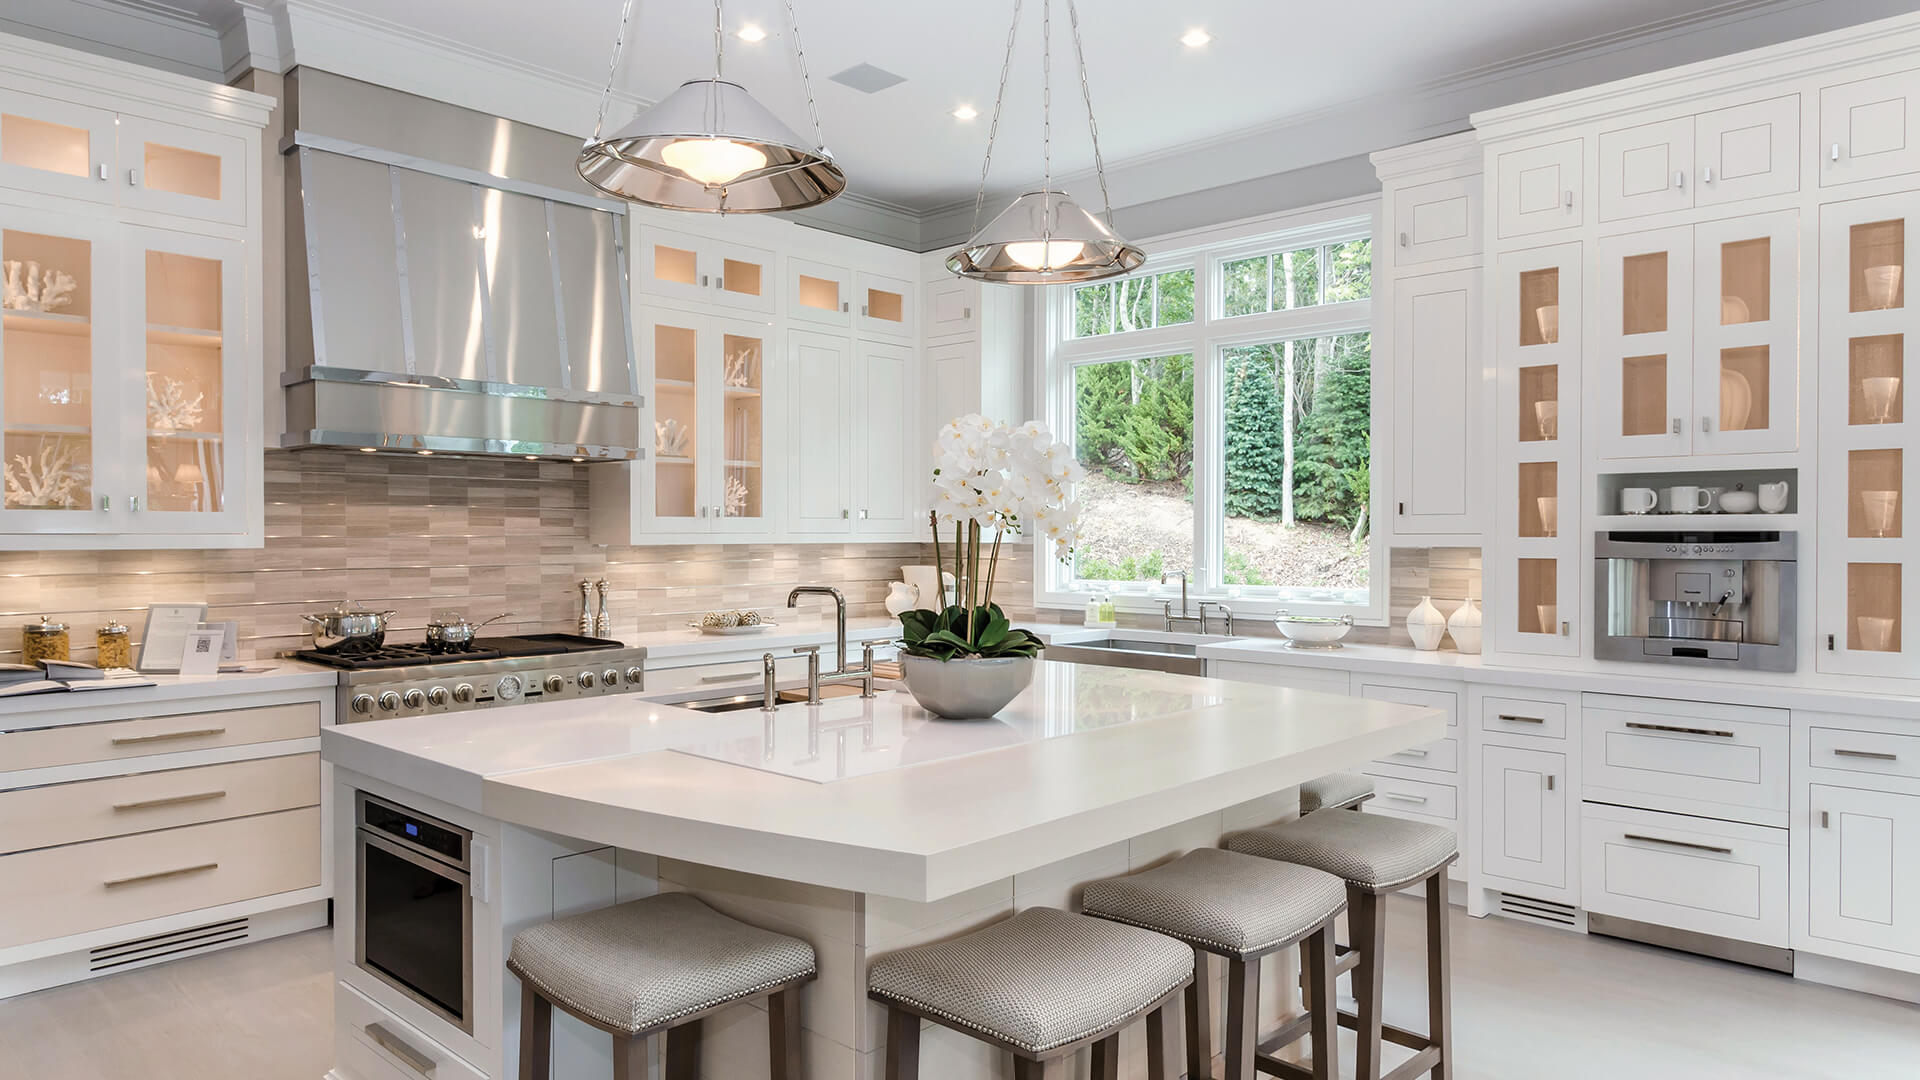 Hamptons Showhouse kitchen with hand-painted cabinets, inset appliances, and cream panels